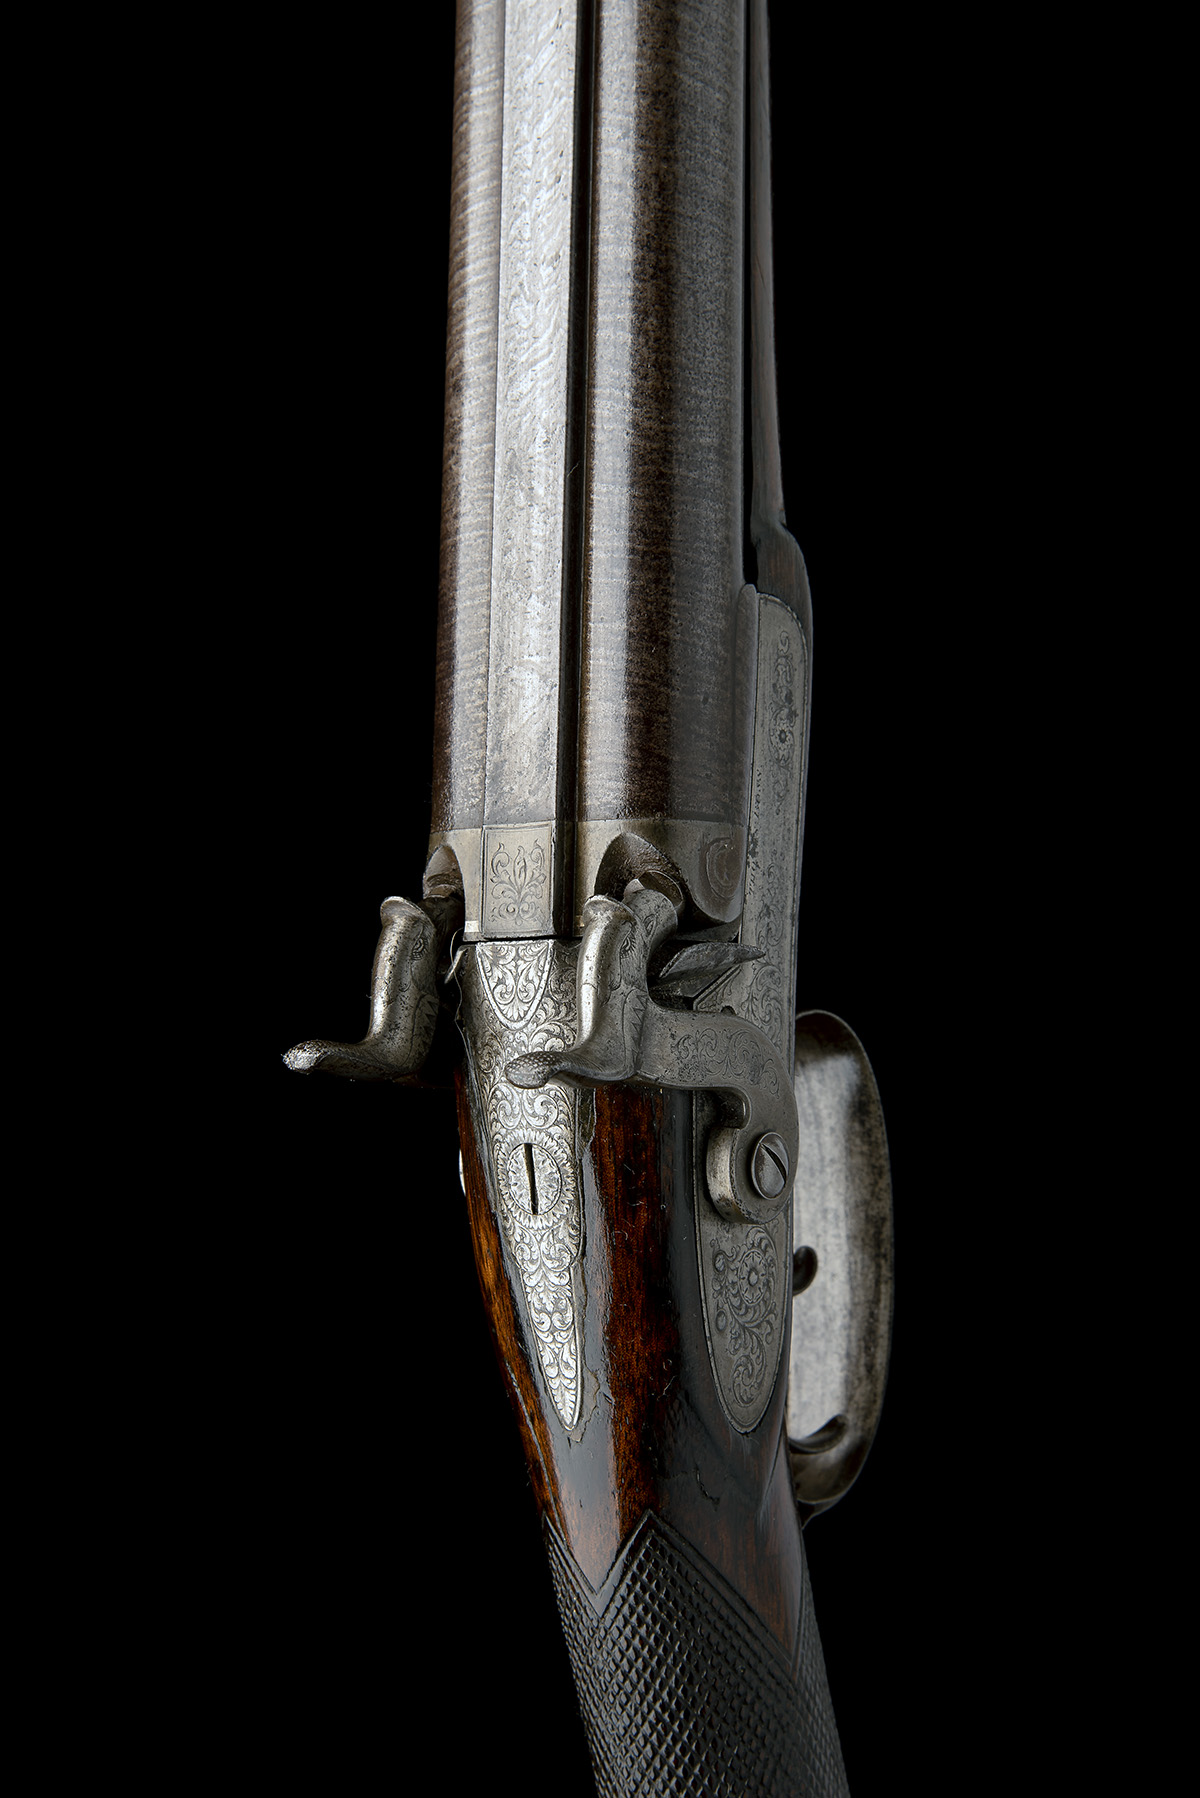 THOMAS BOSS, LONDON A 16-BORE PERCUSSION DOUBLE-BARRELLED SPORTING-GUN, serial no. 605, for 1844, - Image 6 of 8